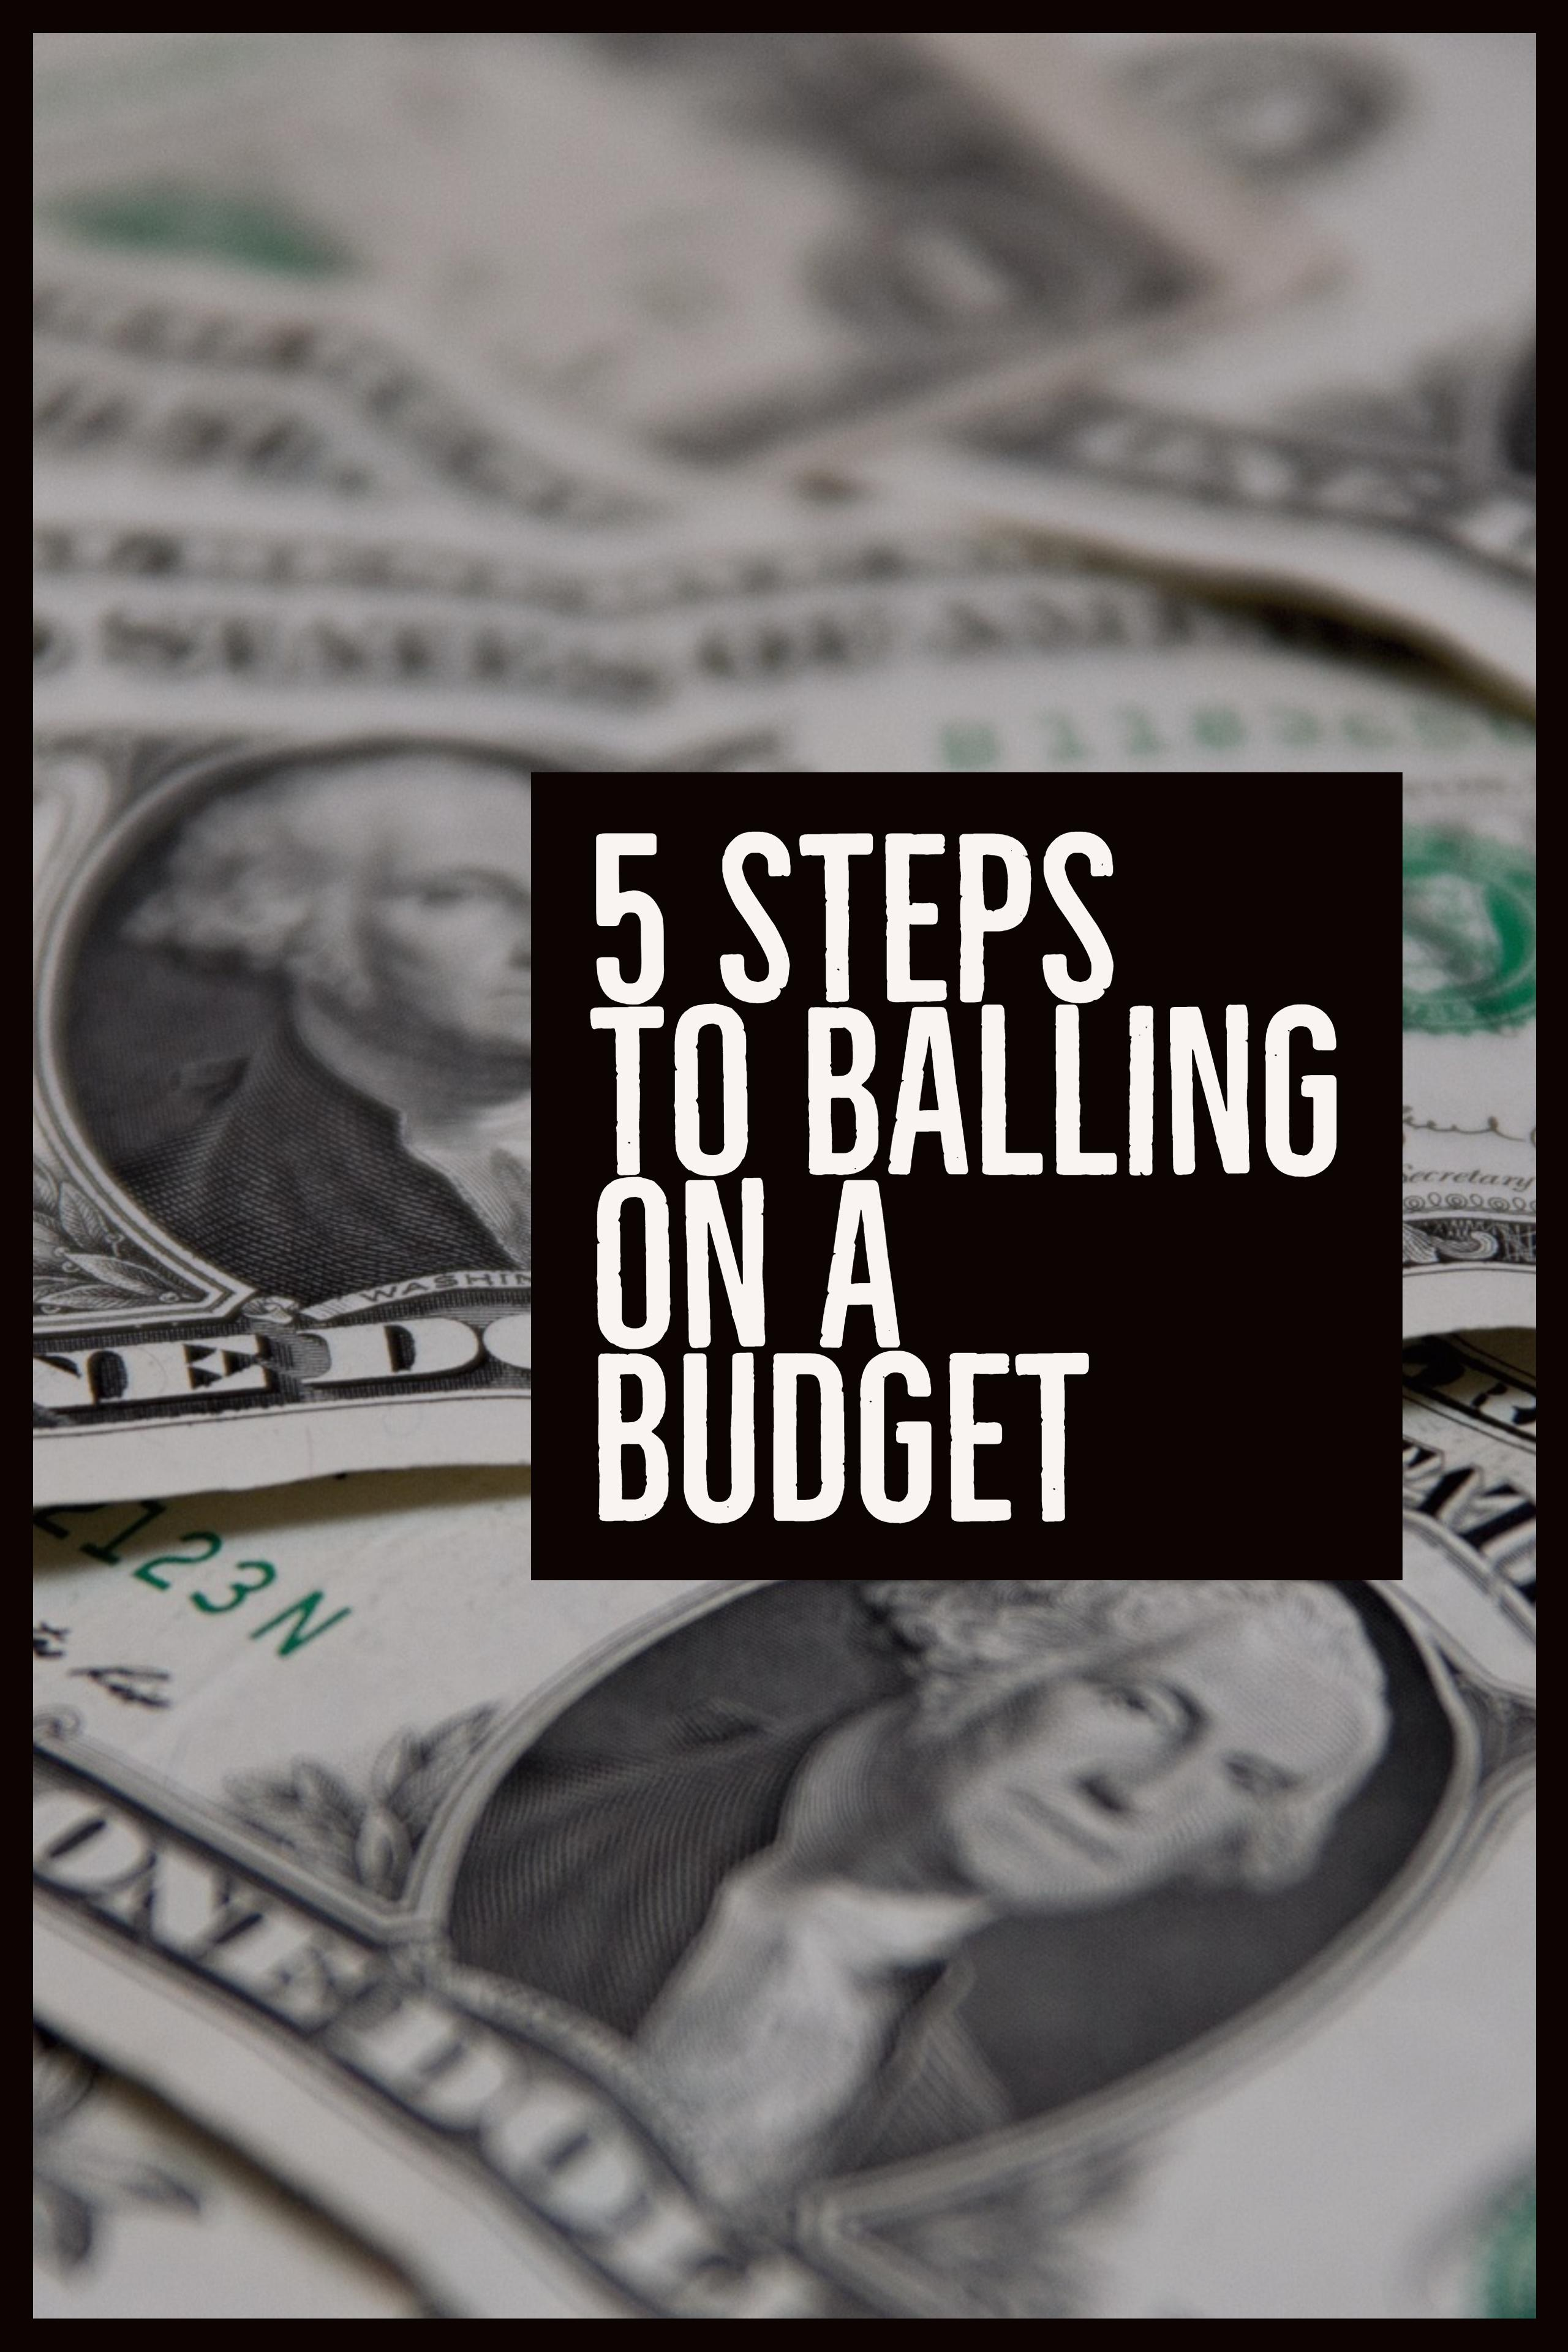 Read this post and more instantly by signing up for the Wealth Noir Preview, and get a chance to win an Amazon Gift Card. Sign up at wealthnoir.com.